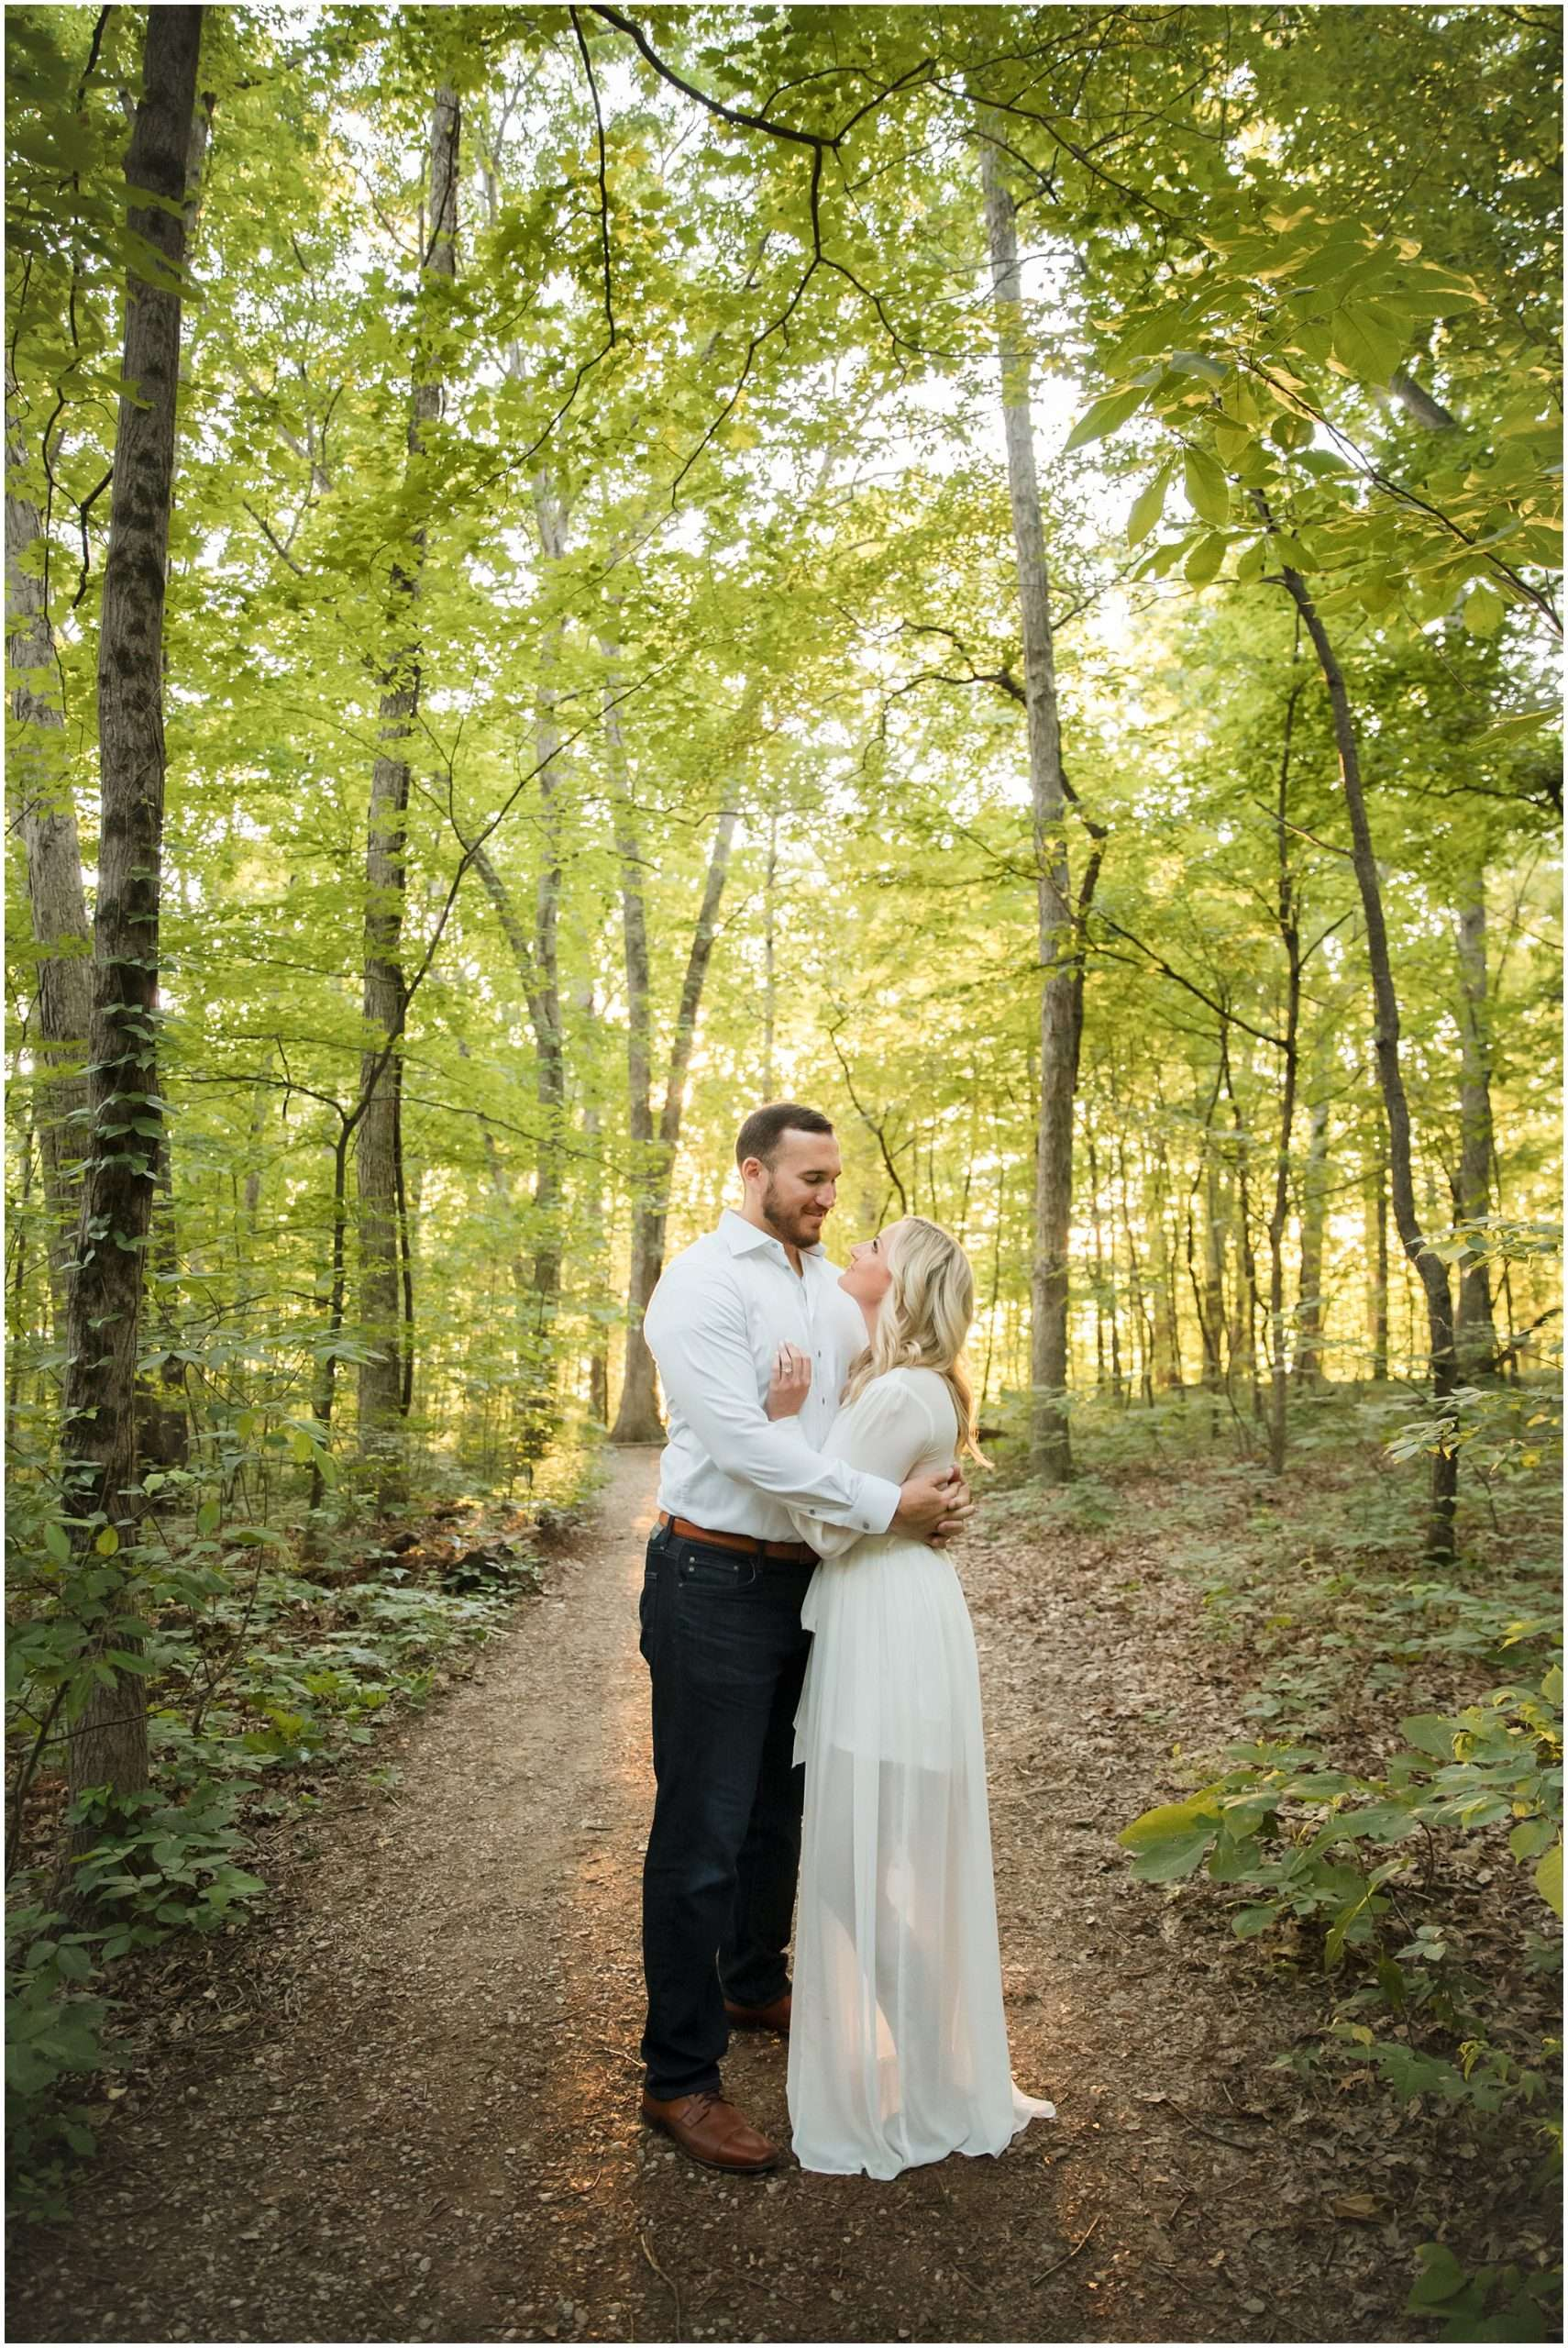 a couple wearing white embraces on a path in the woods with the sun shining through the trees behind them